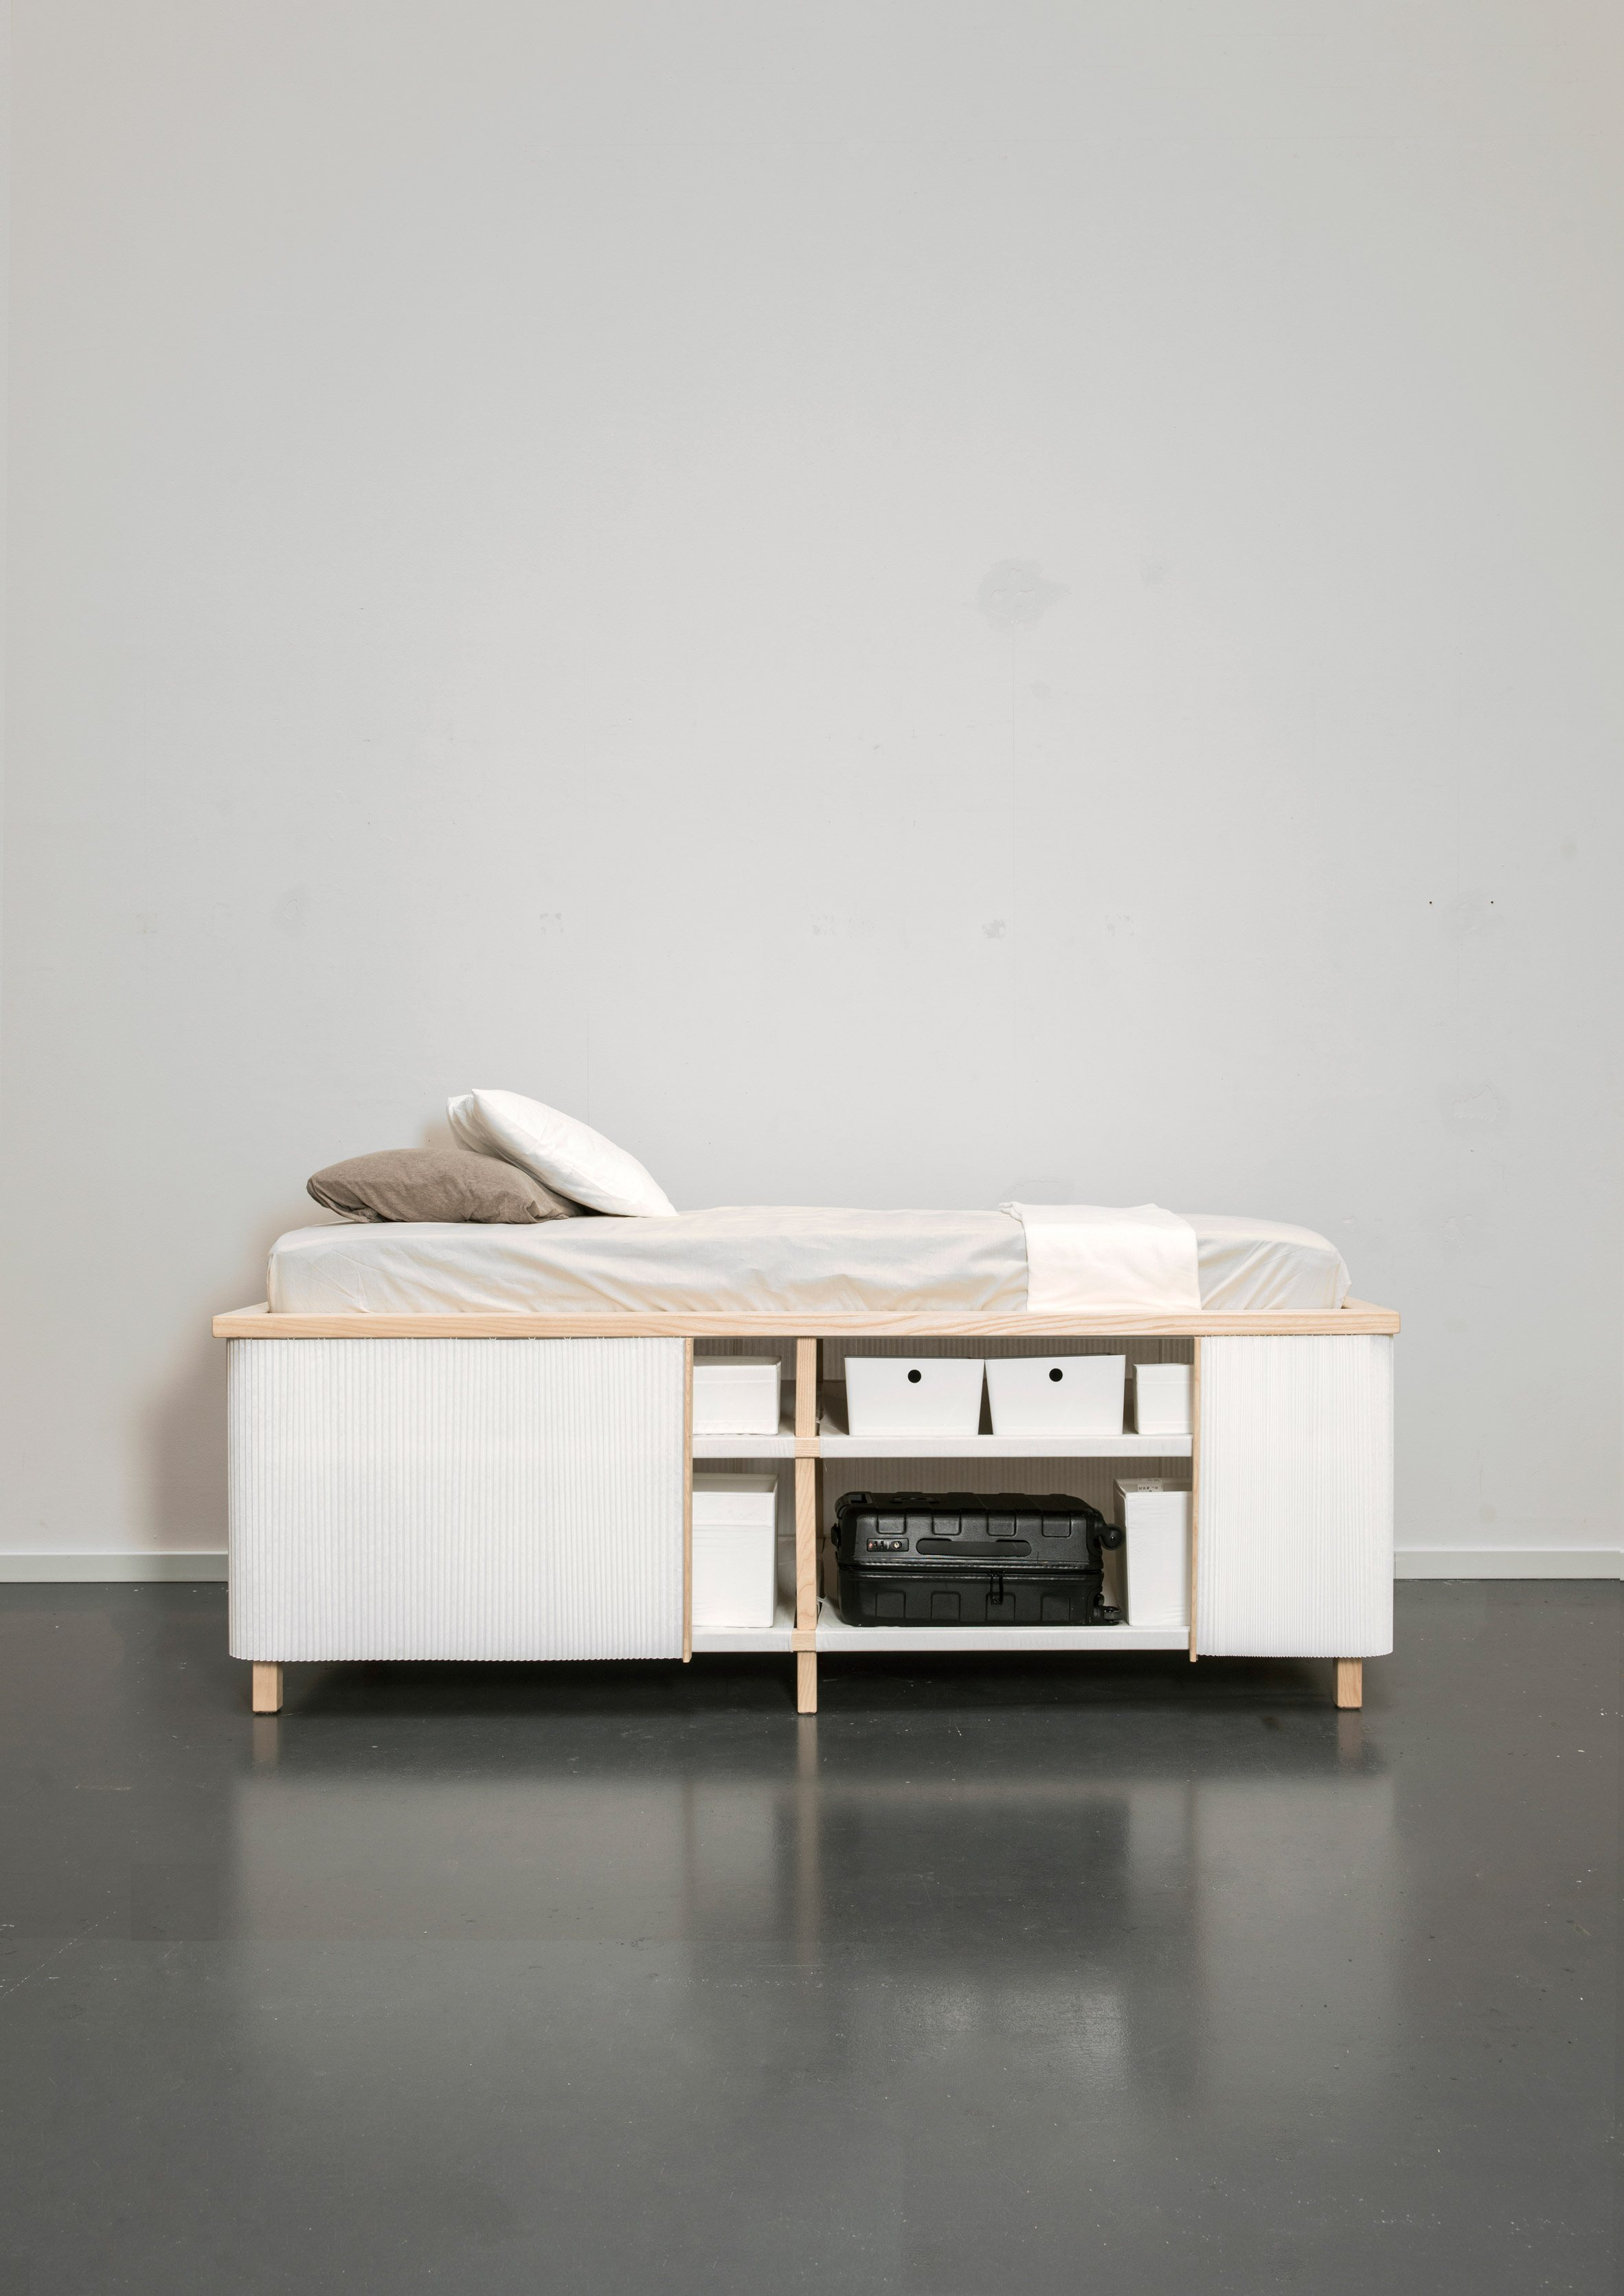 IGNANT-Design-Yesul-Jang-Tiny-Home-Bed-5